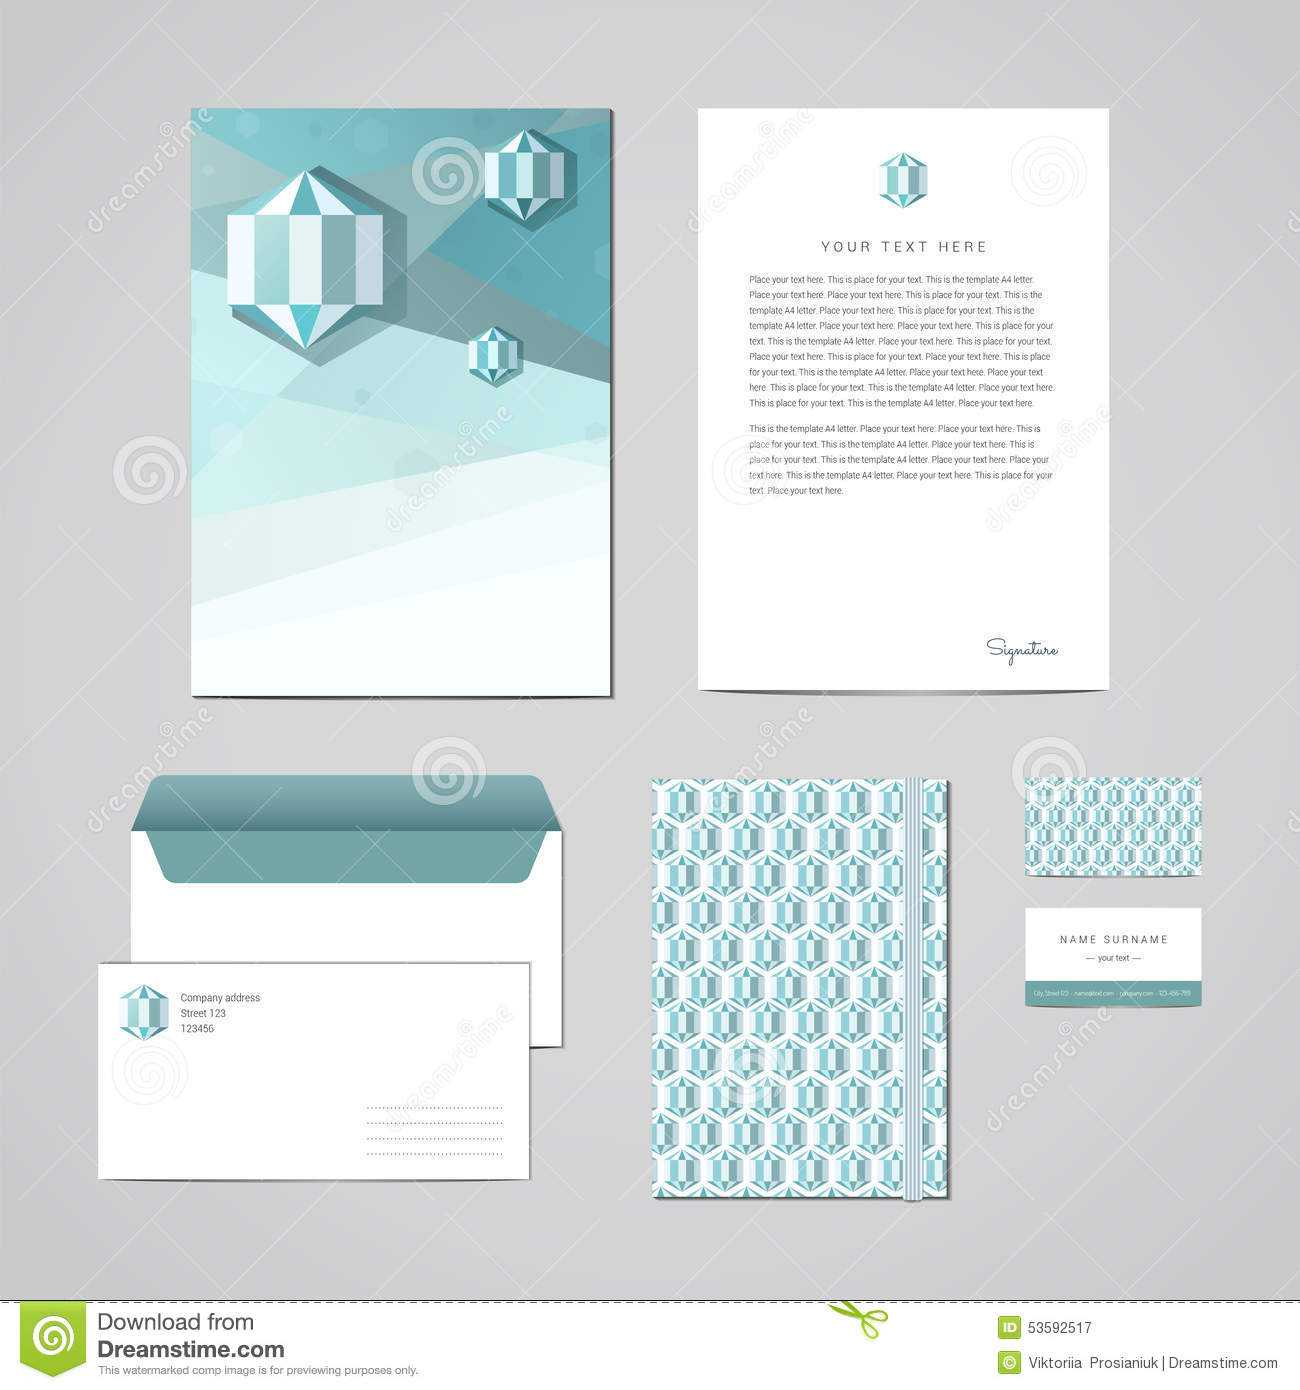 Corporate Identity Design Template. Documentation For For Business Card Letterhead Envelope Template